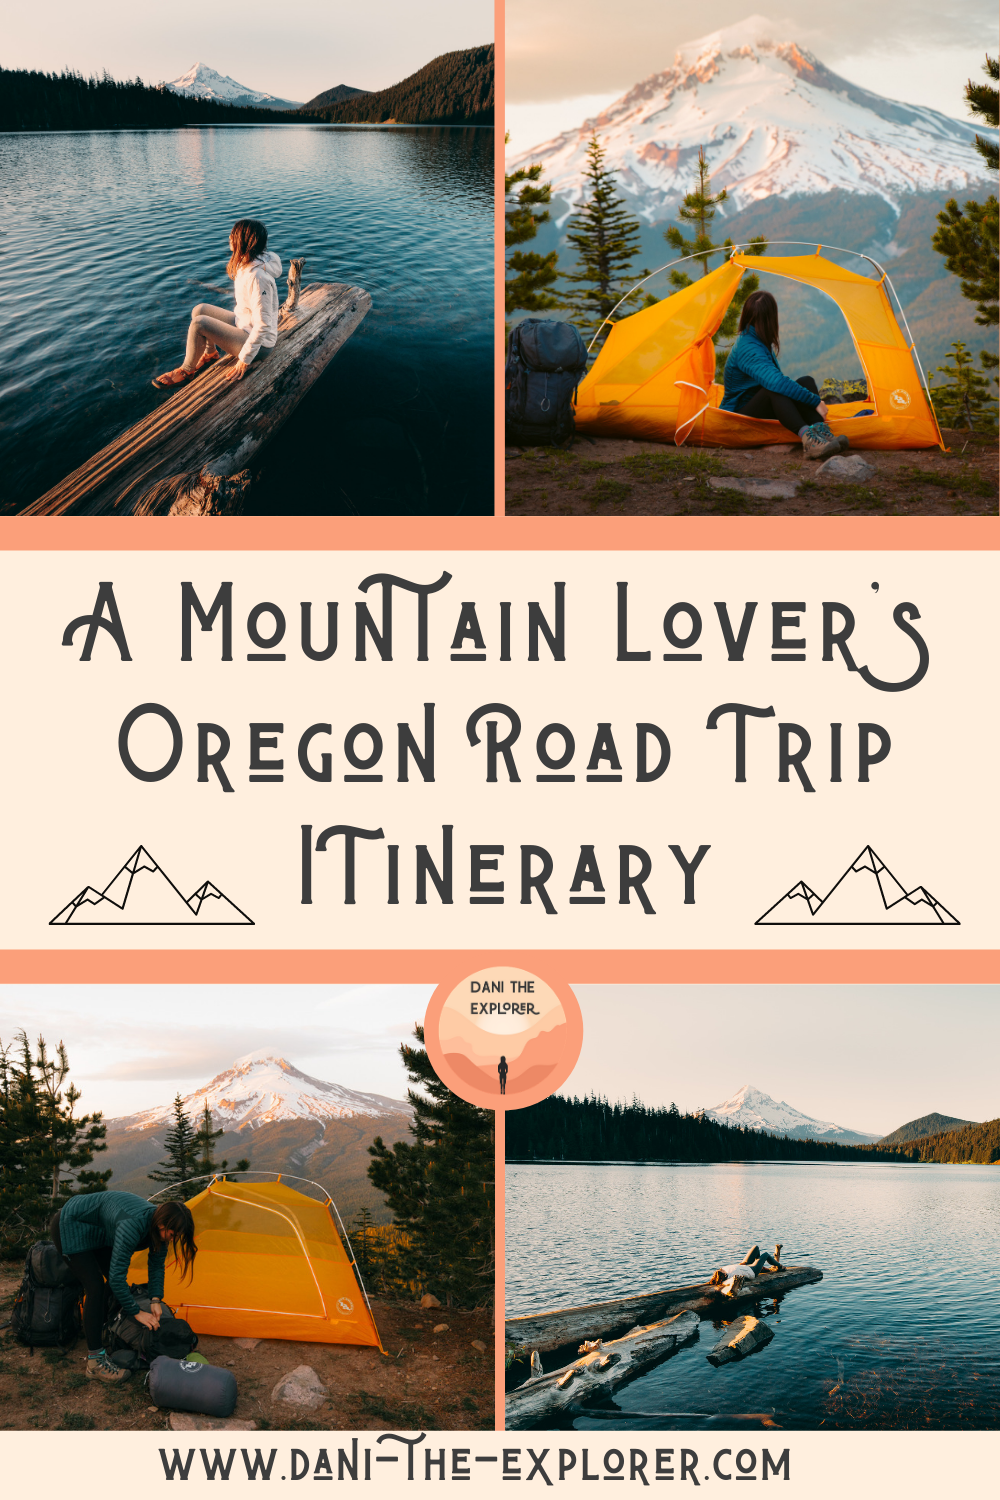 Oregon Road Trip Itinerary for Hikers & Adventure Lovers